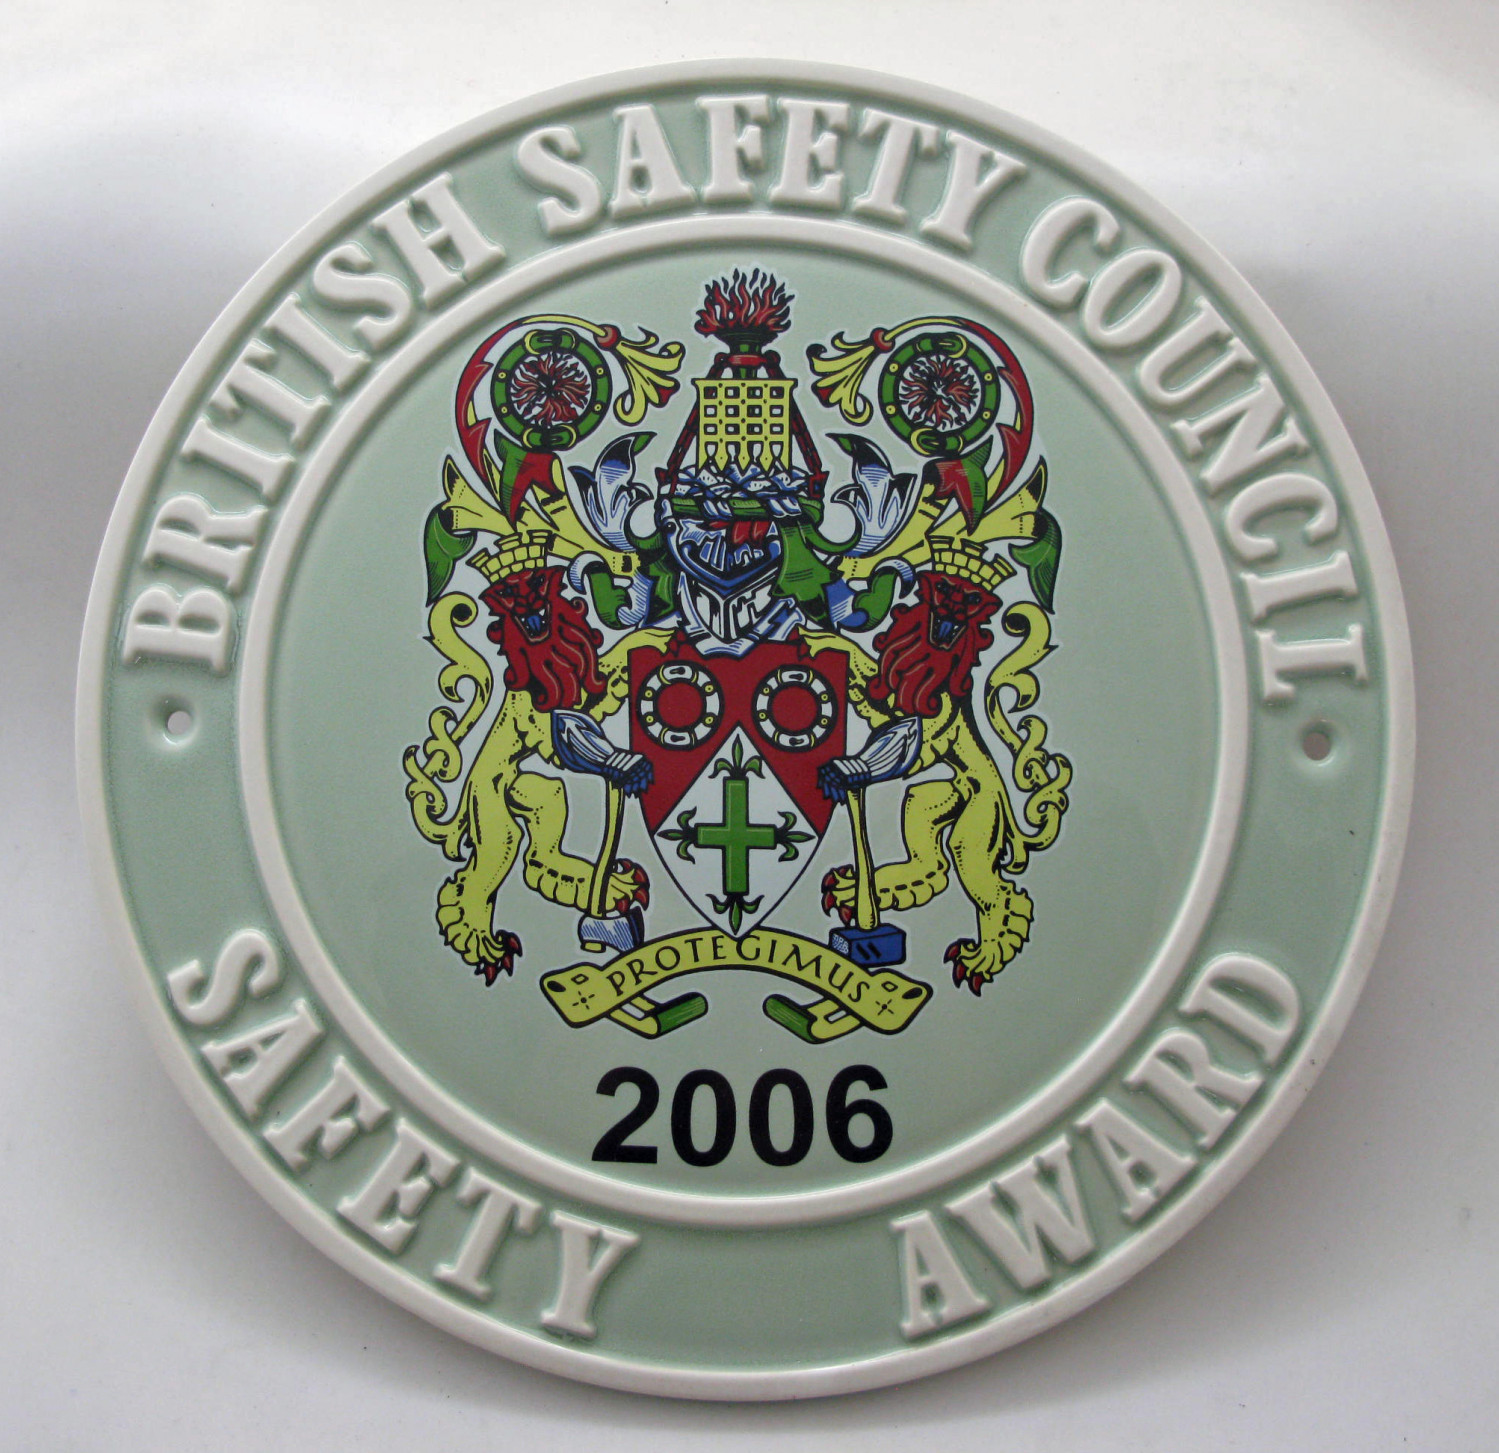 Safety Award  2006